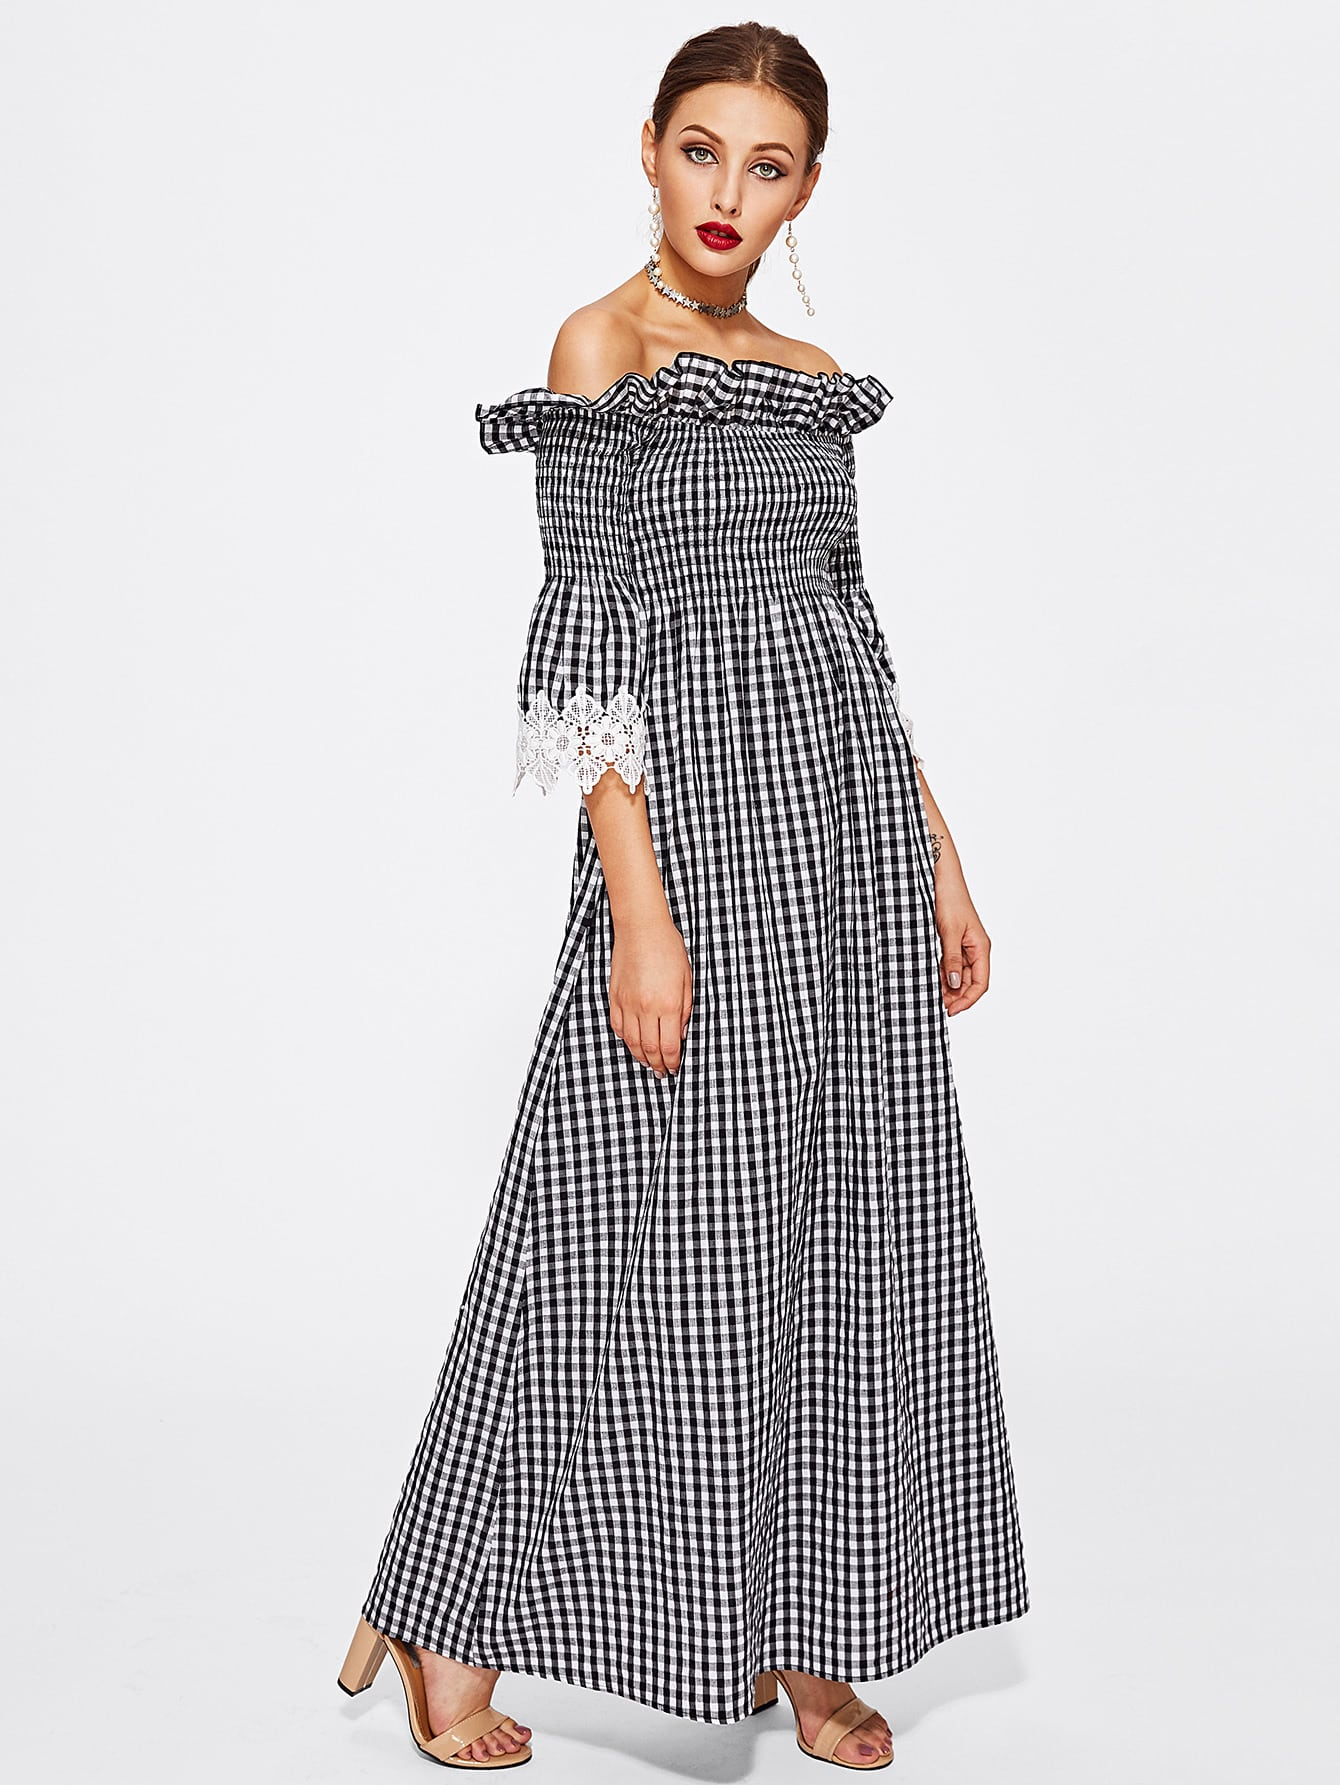 Contrast Lace Cuff Frill Detail Smocked Gingham Dress frill layered pearl detail sweatshirt dress